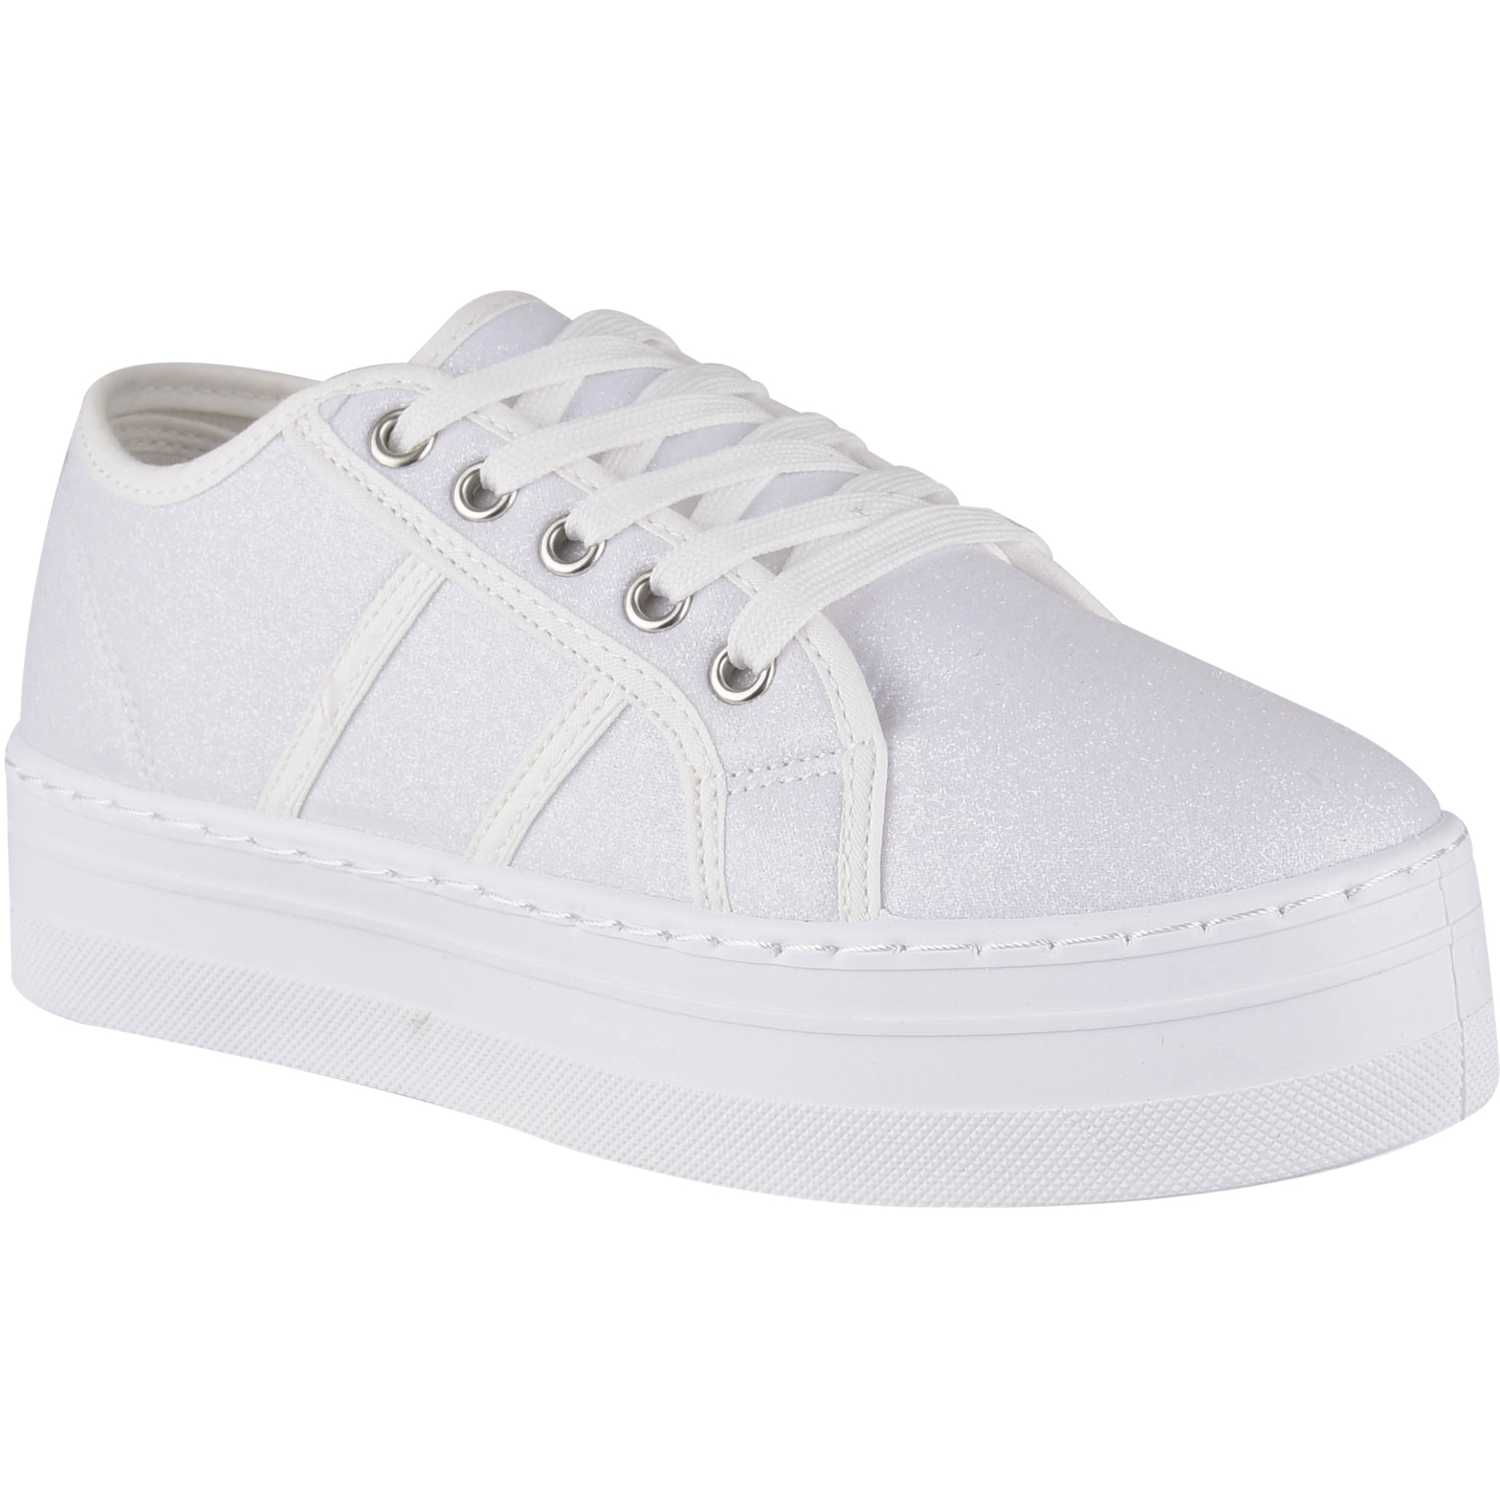 Platanitos zc a005 Blanco Zapatillas Fashion